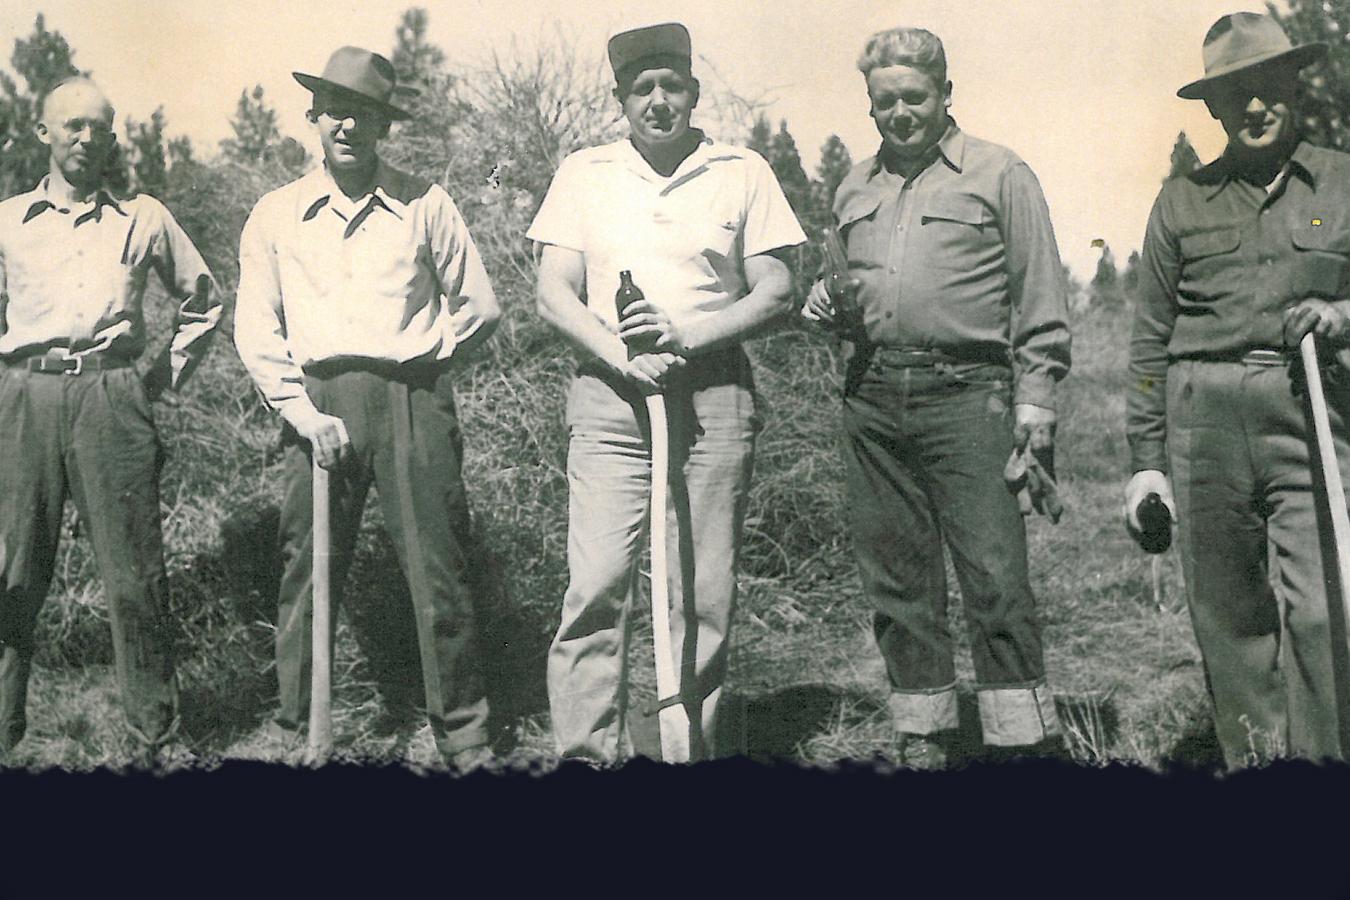 During WWII when manpower was short, members took care of the maintenance themselves and voted to allow jeans on the course, so they could play after work. Jeans have been allowed ever since.